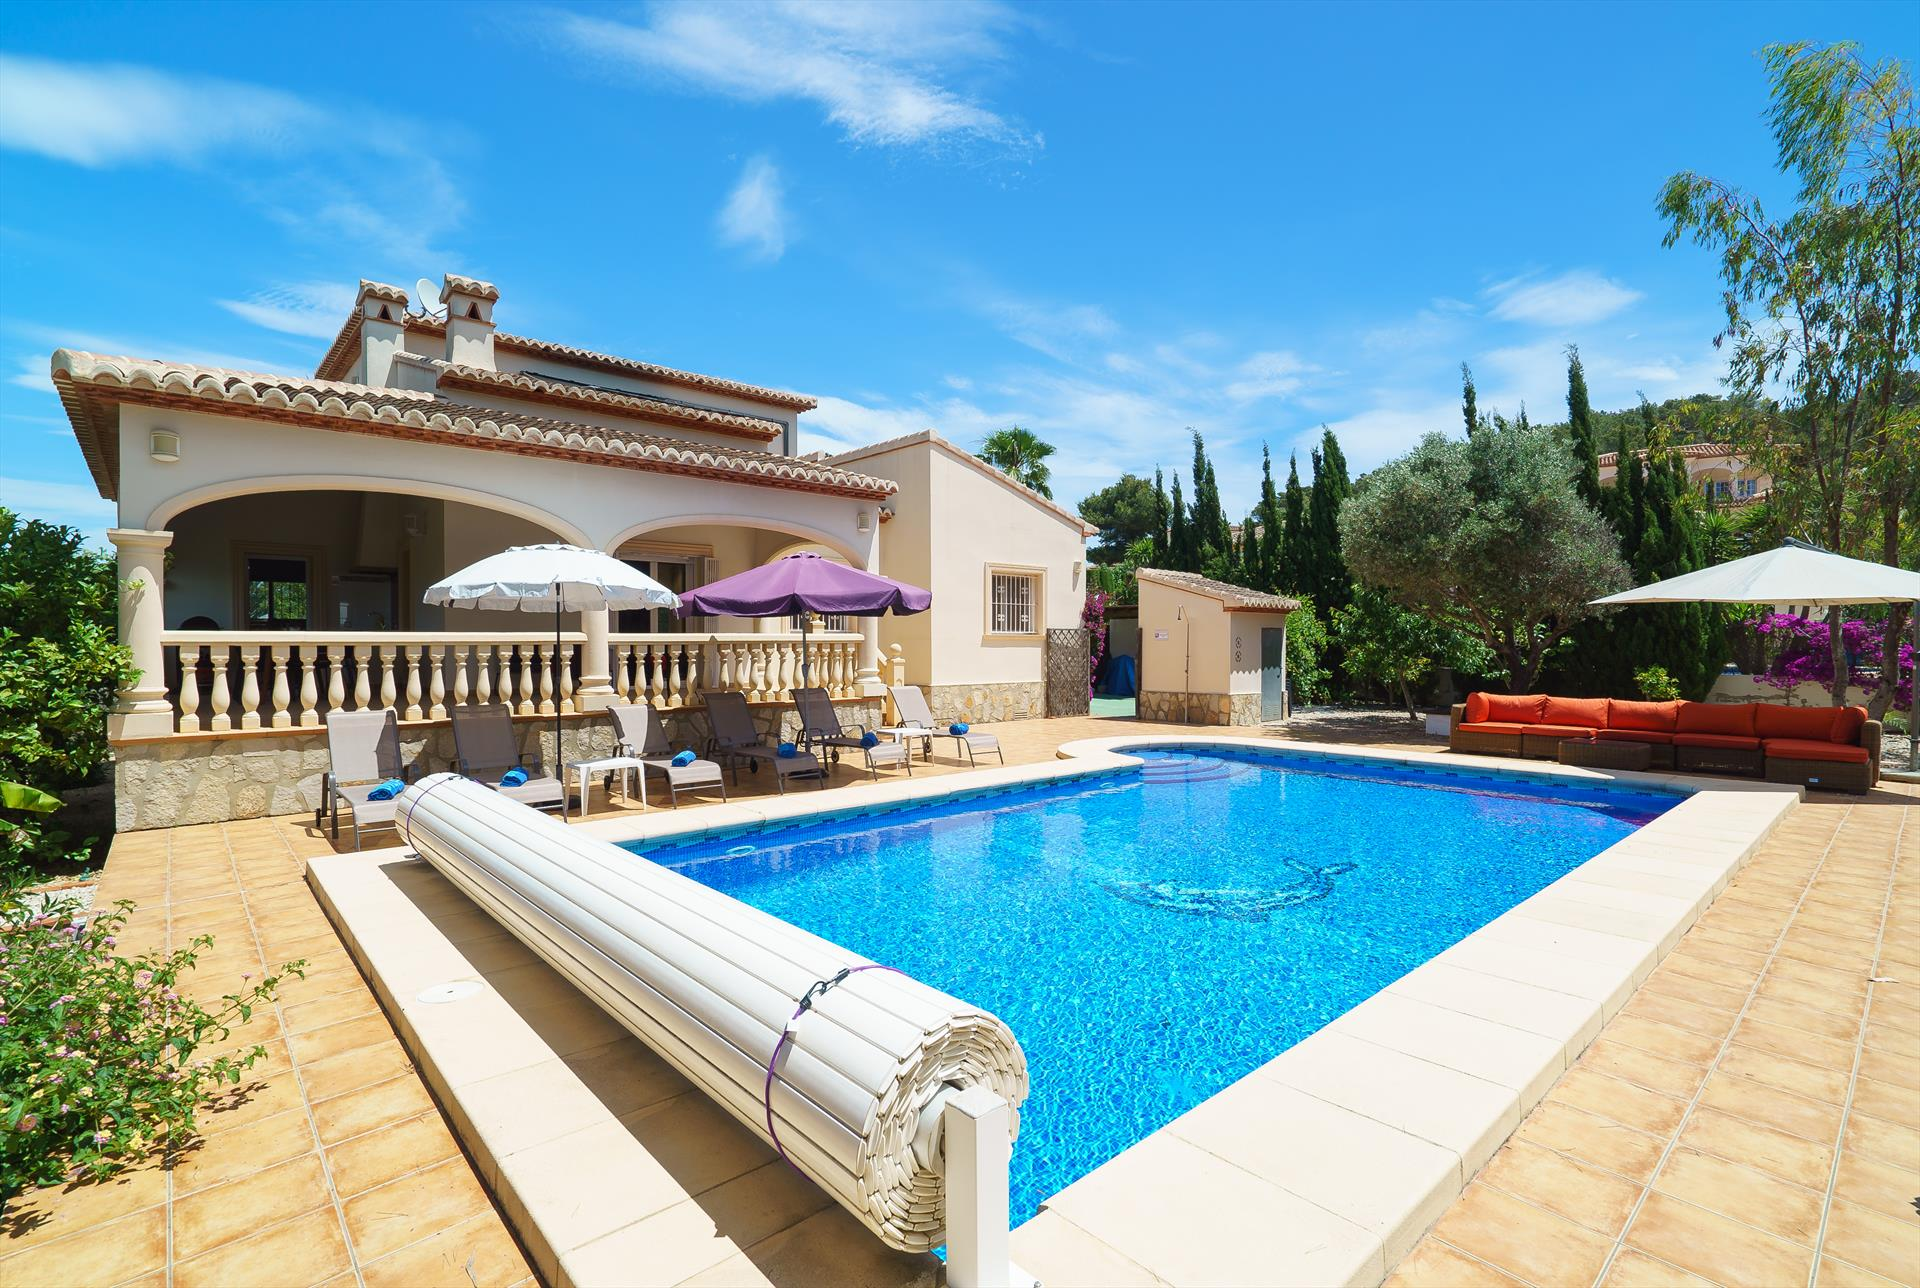 De las Adelfas 6 pax, Beautiful and comfortable villa in Javea, on the Costa Blanca, Spain  with private pool for 6 persons.....